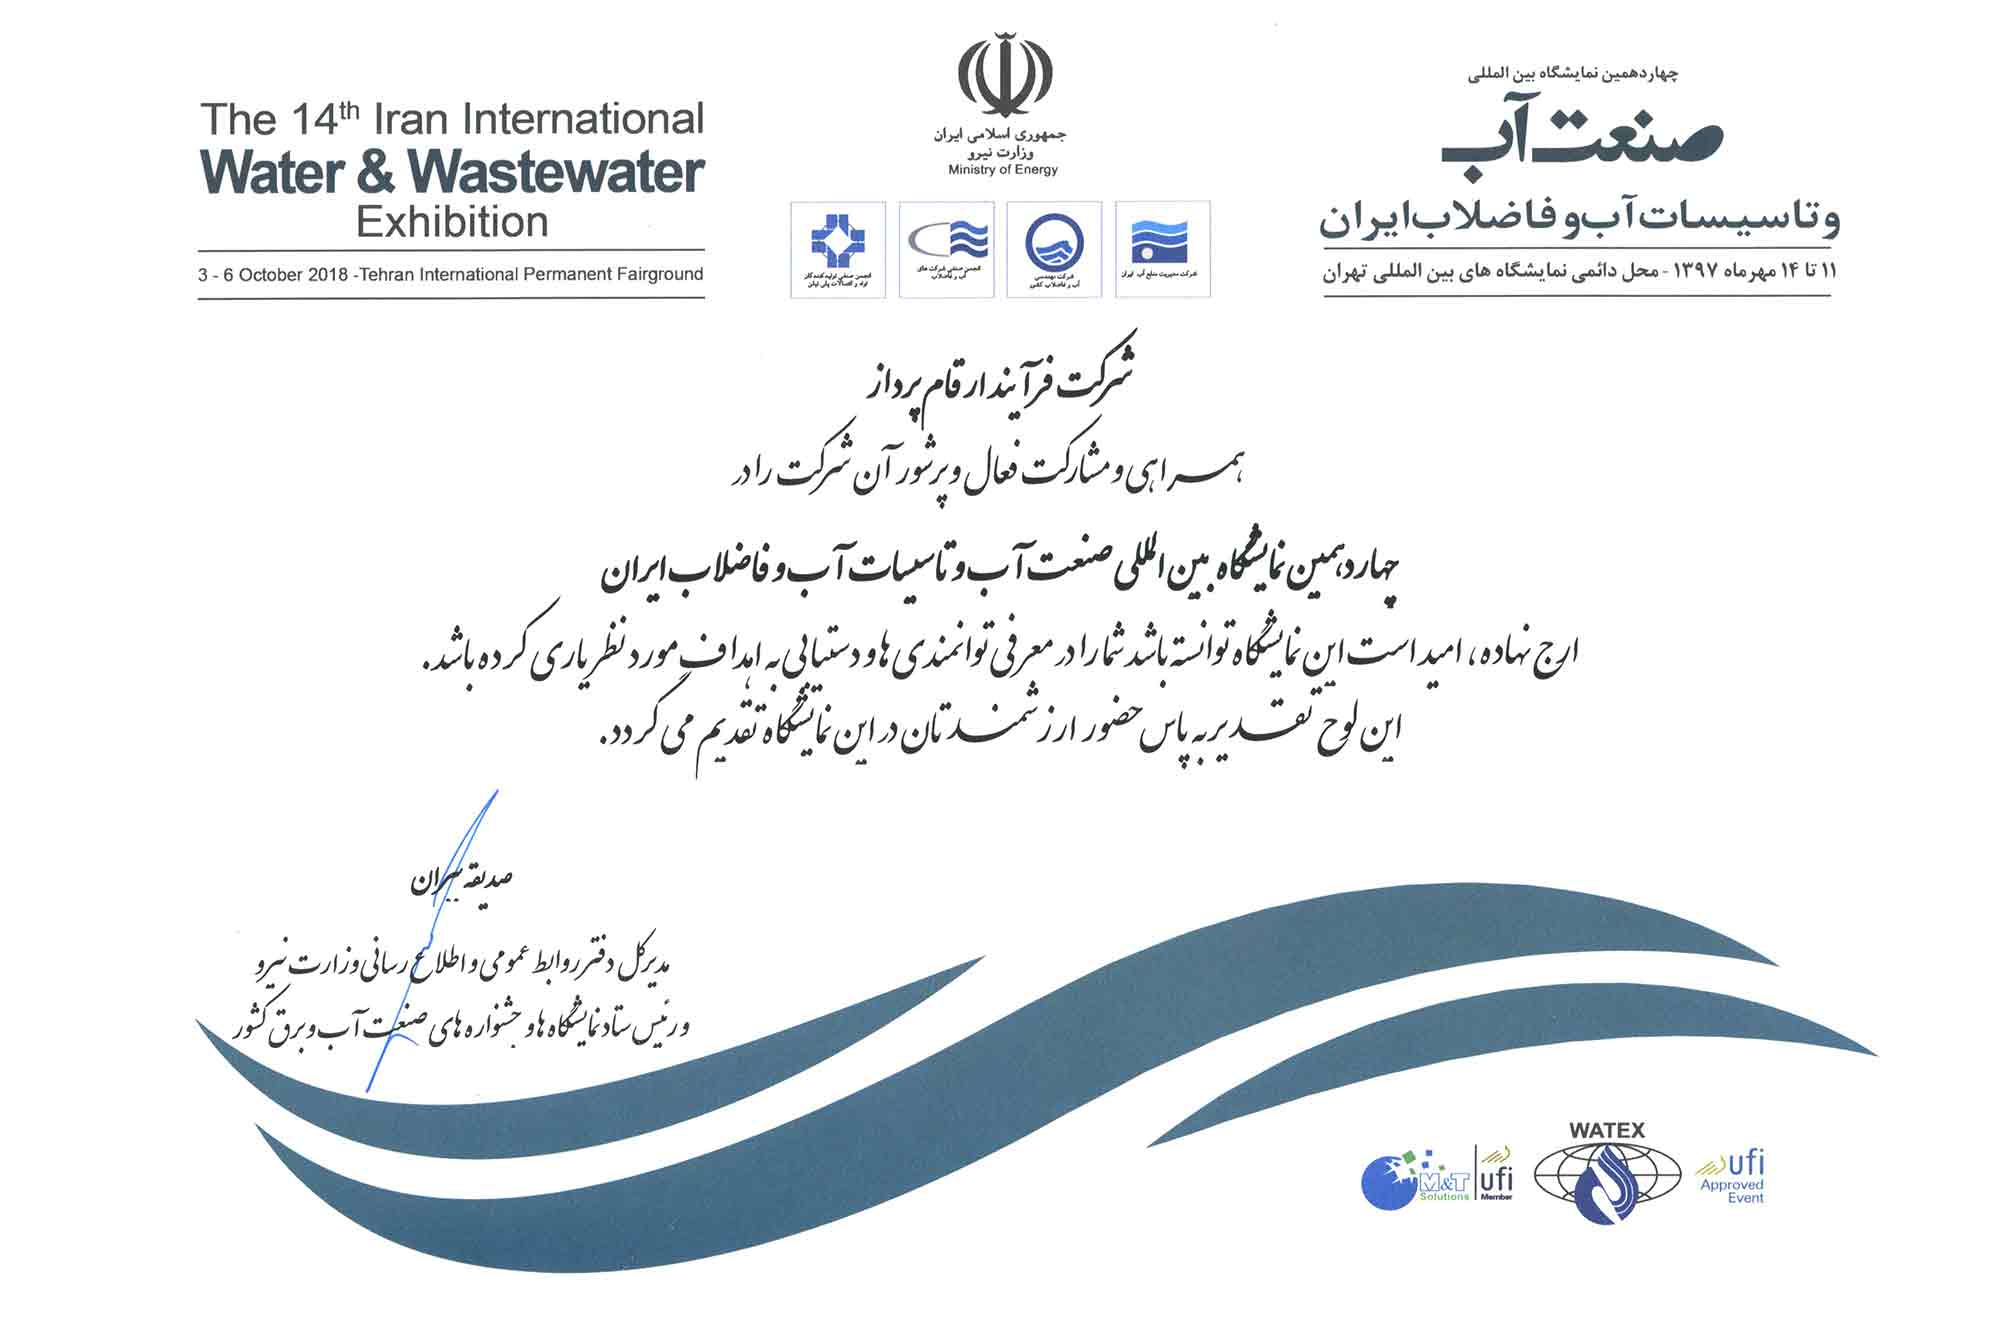 Fourteenth International Exhibition of Iranian Water and Sewerage Industry